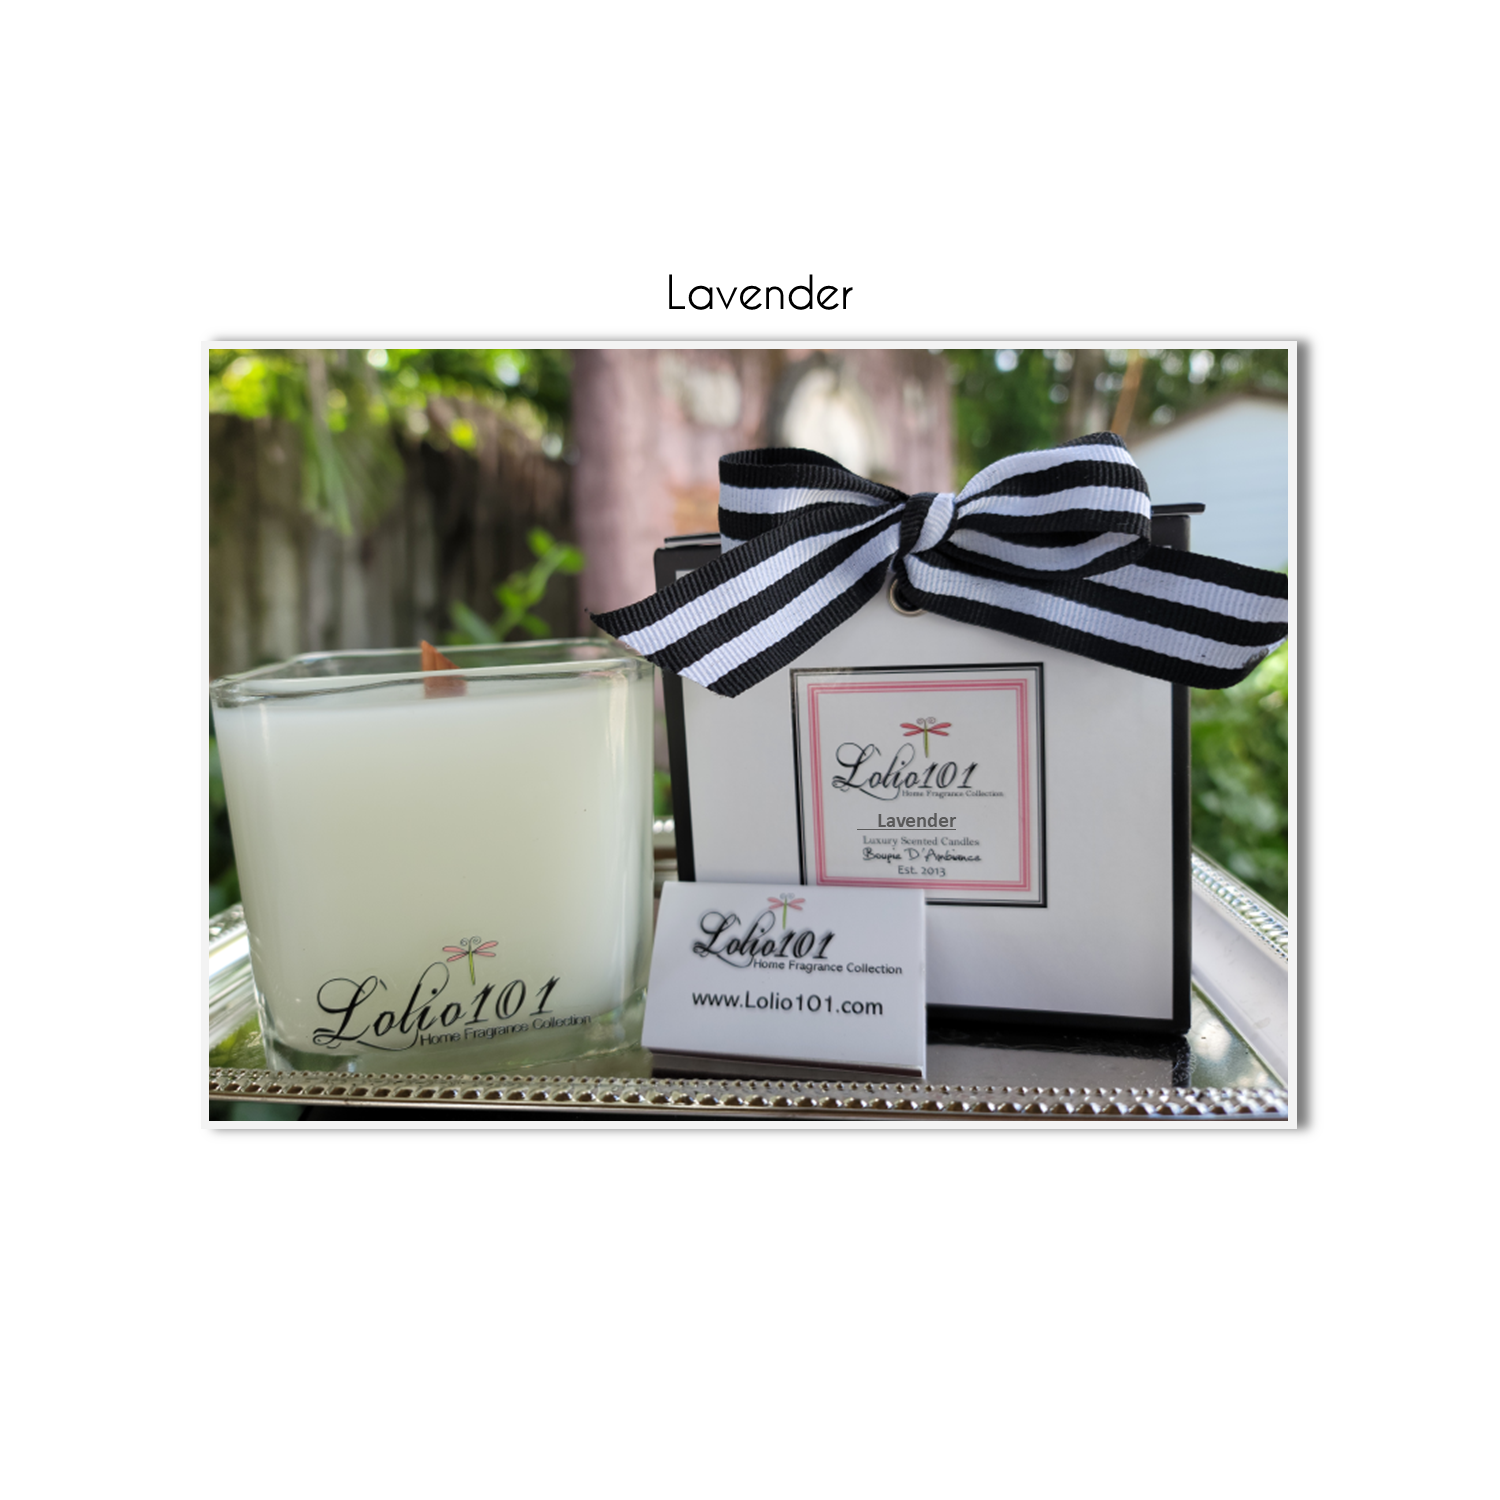 Lavenderluxury scented candle 12oz/340g